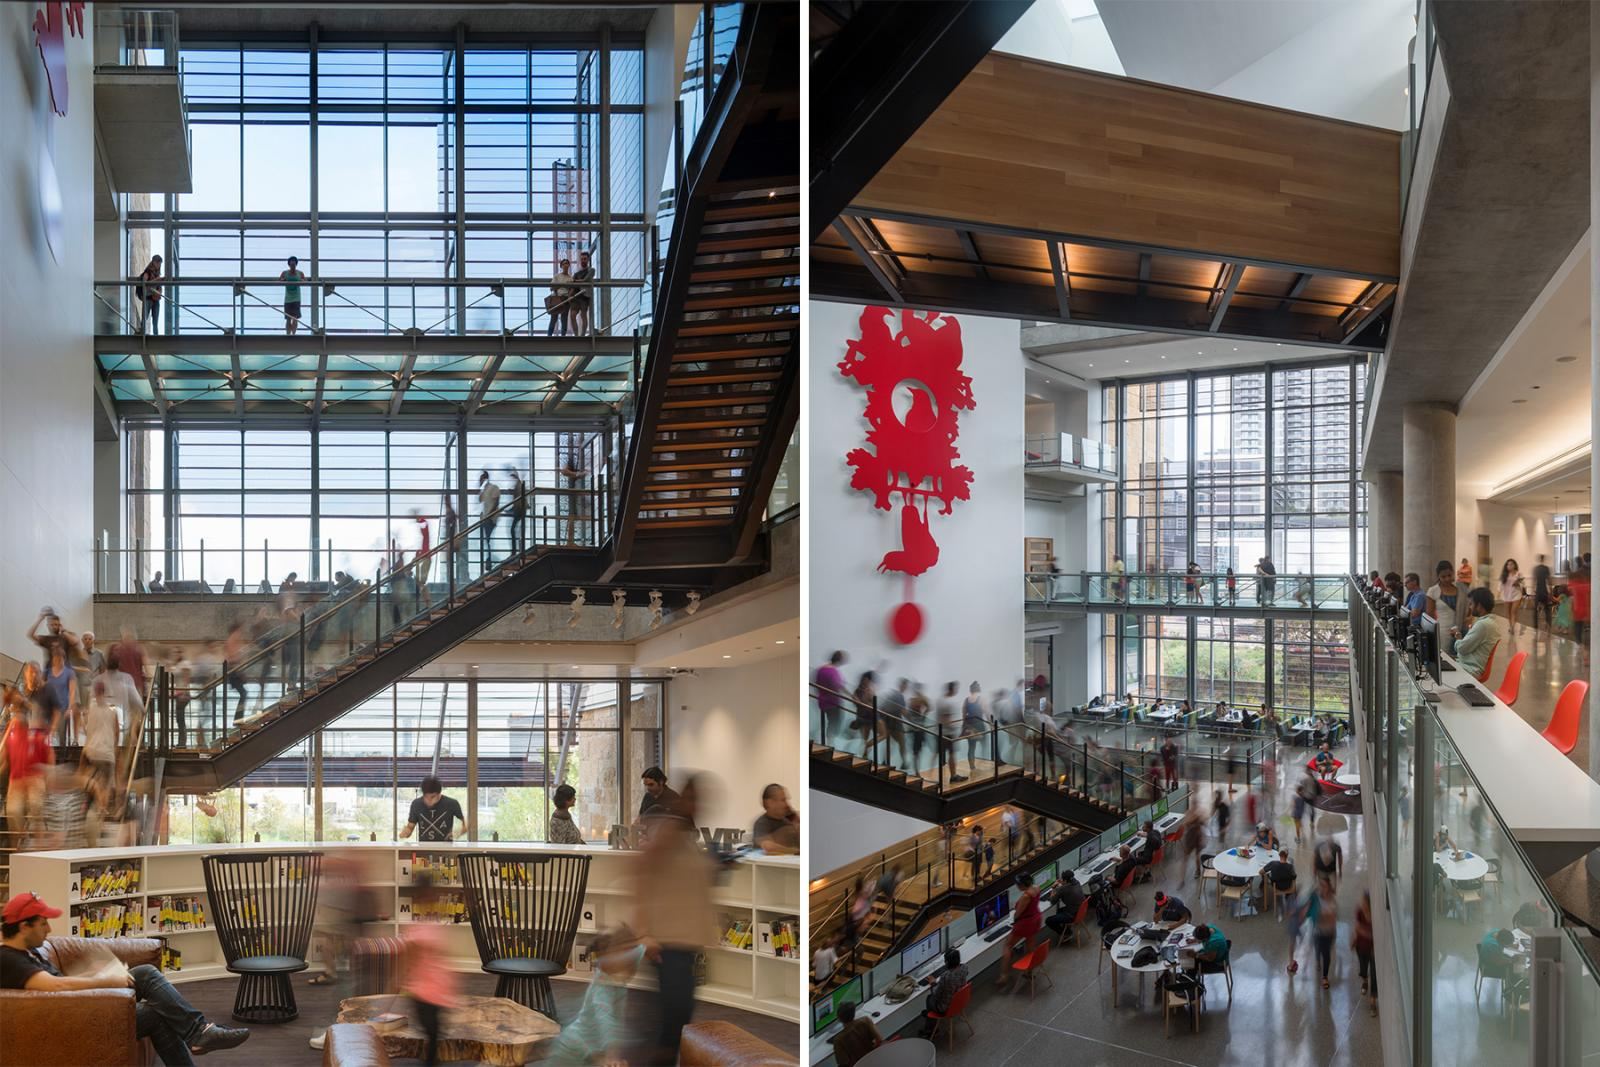 Two shots of austin library interior